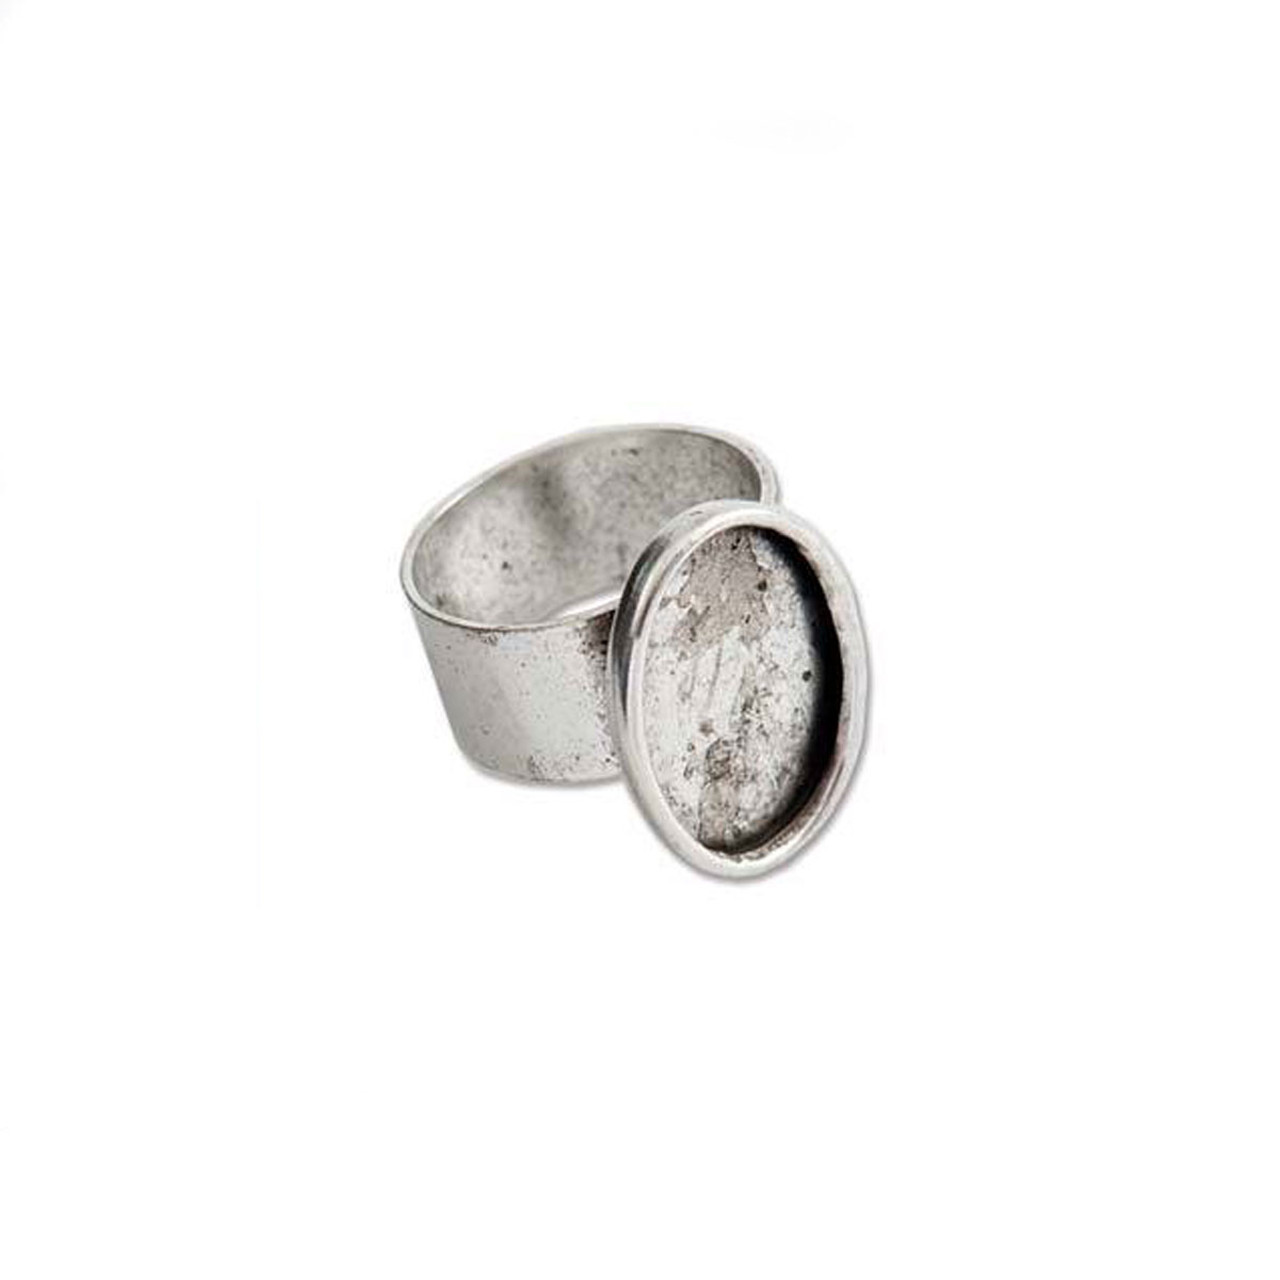 Bezel Ring With Adjustable Band - Oval Antique Silver - 13x18mm